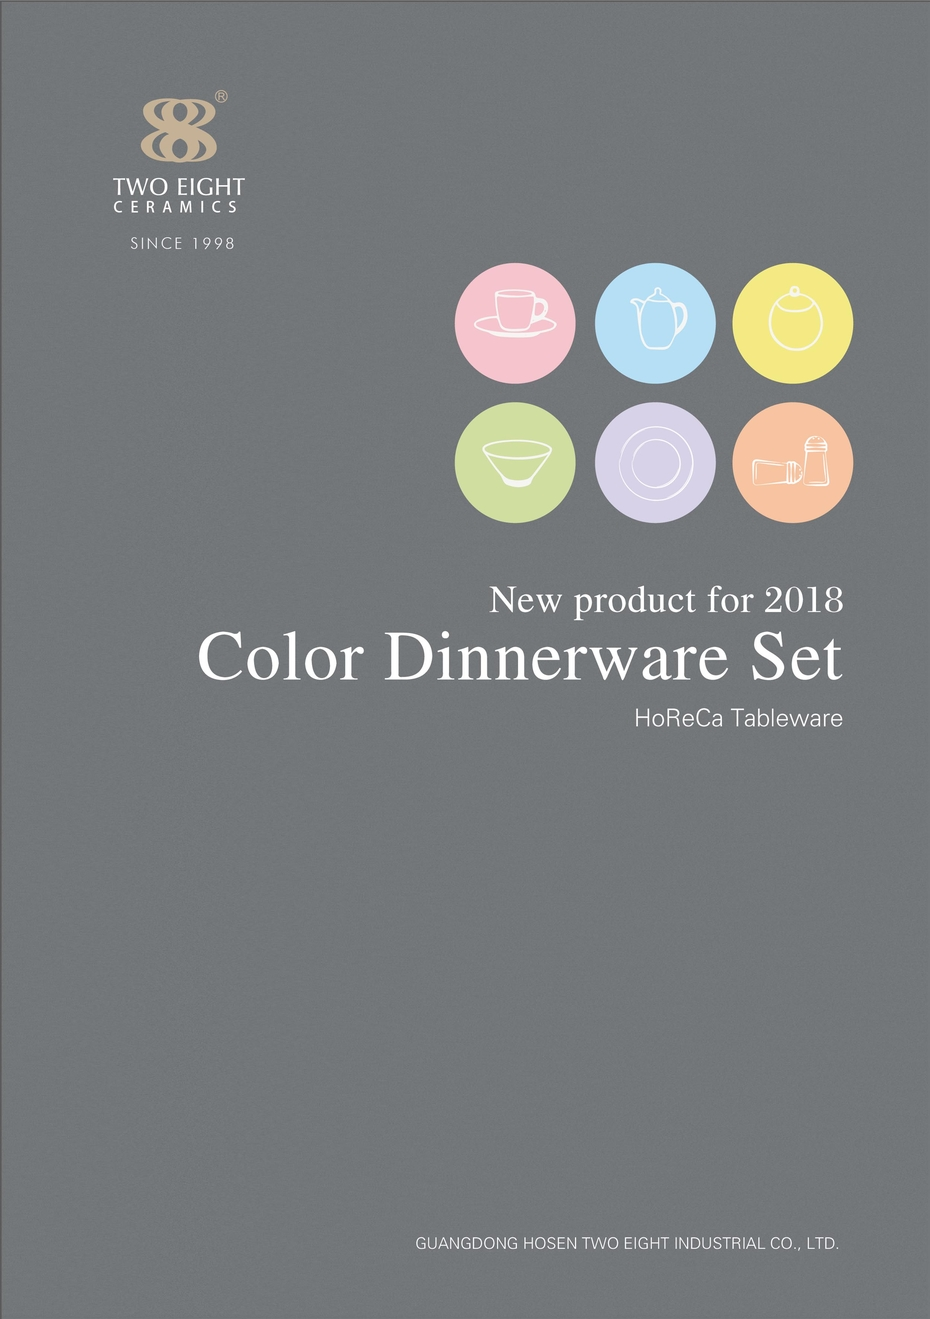 New product for 2018-Color Dinnerware Set